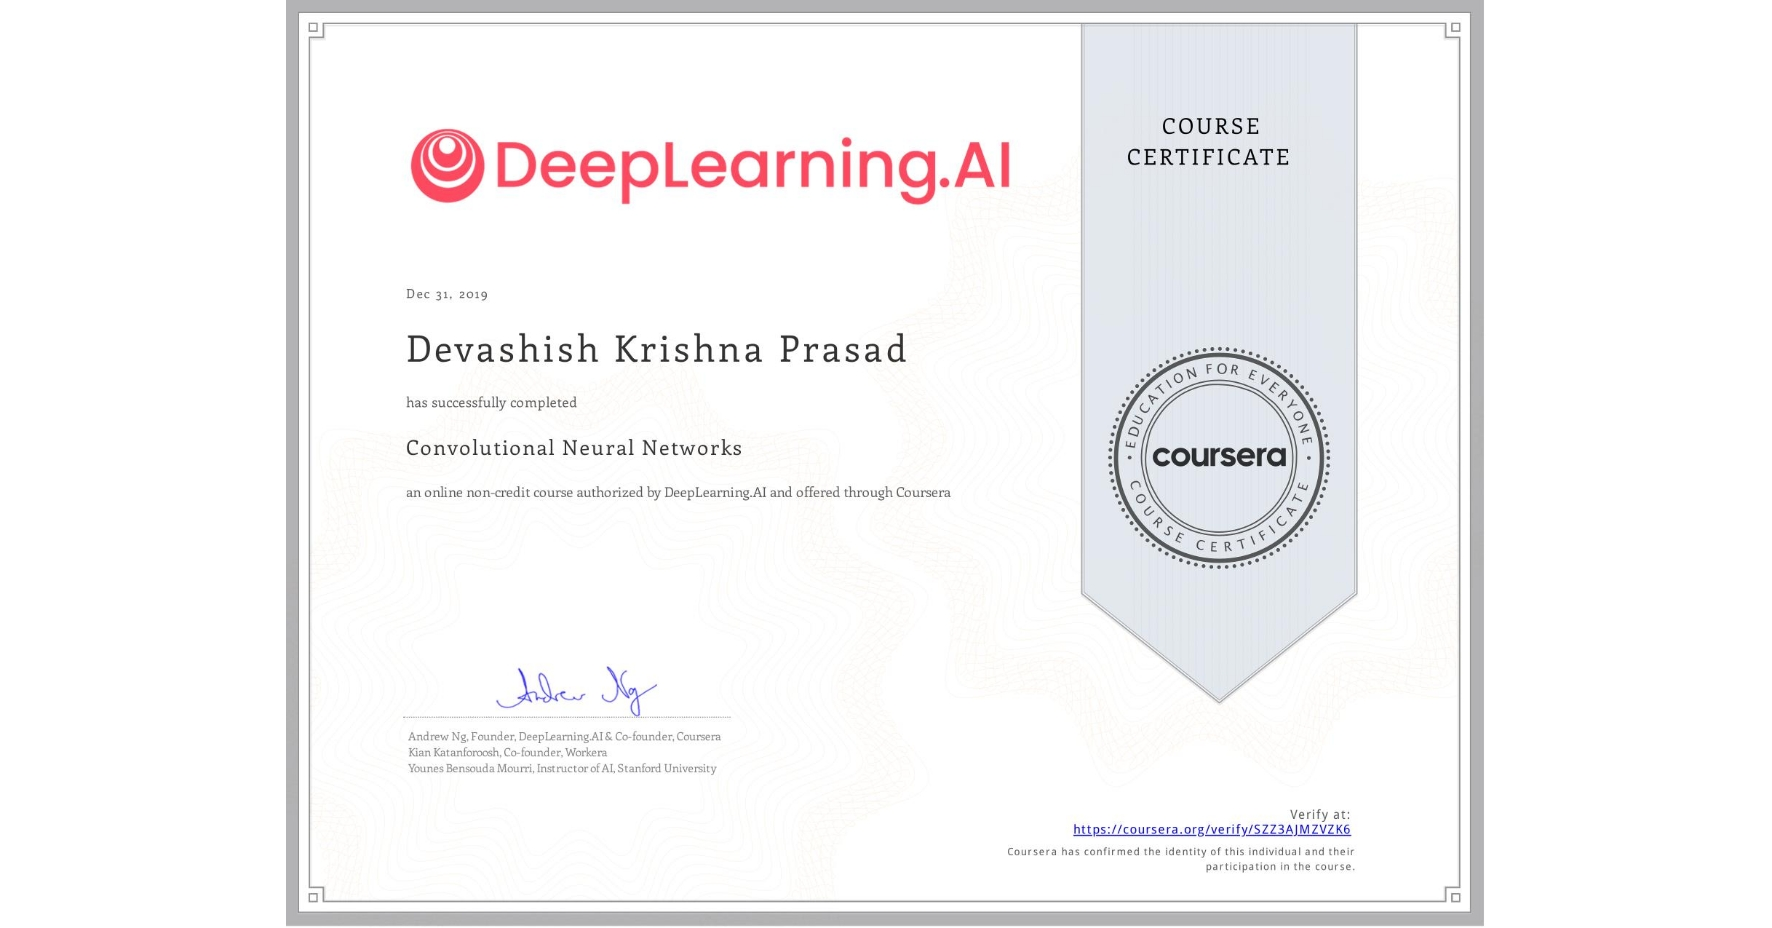 View certificate for Devashish Krishna Prasad, Convolutional Neural Networks, an online non-credit course authorized by DeepLearning.AI and offered through Coursera